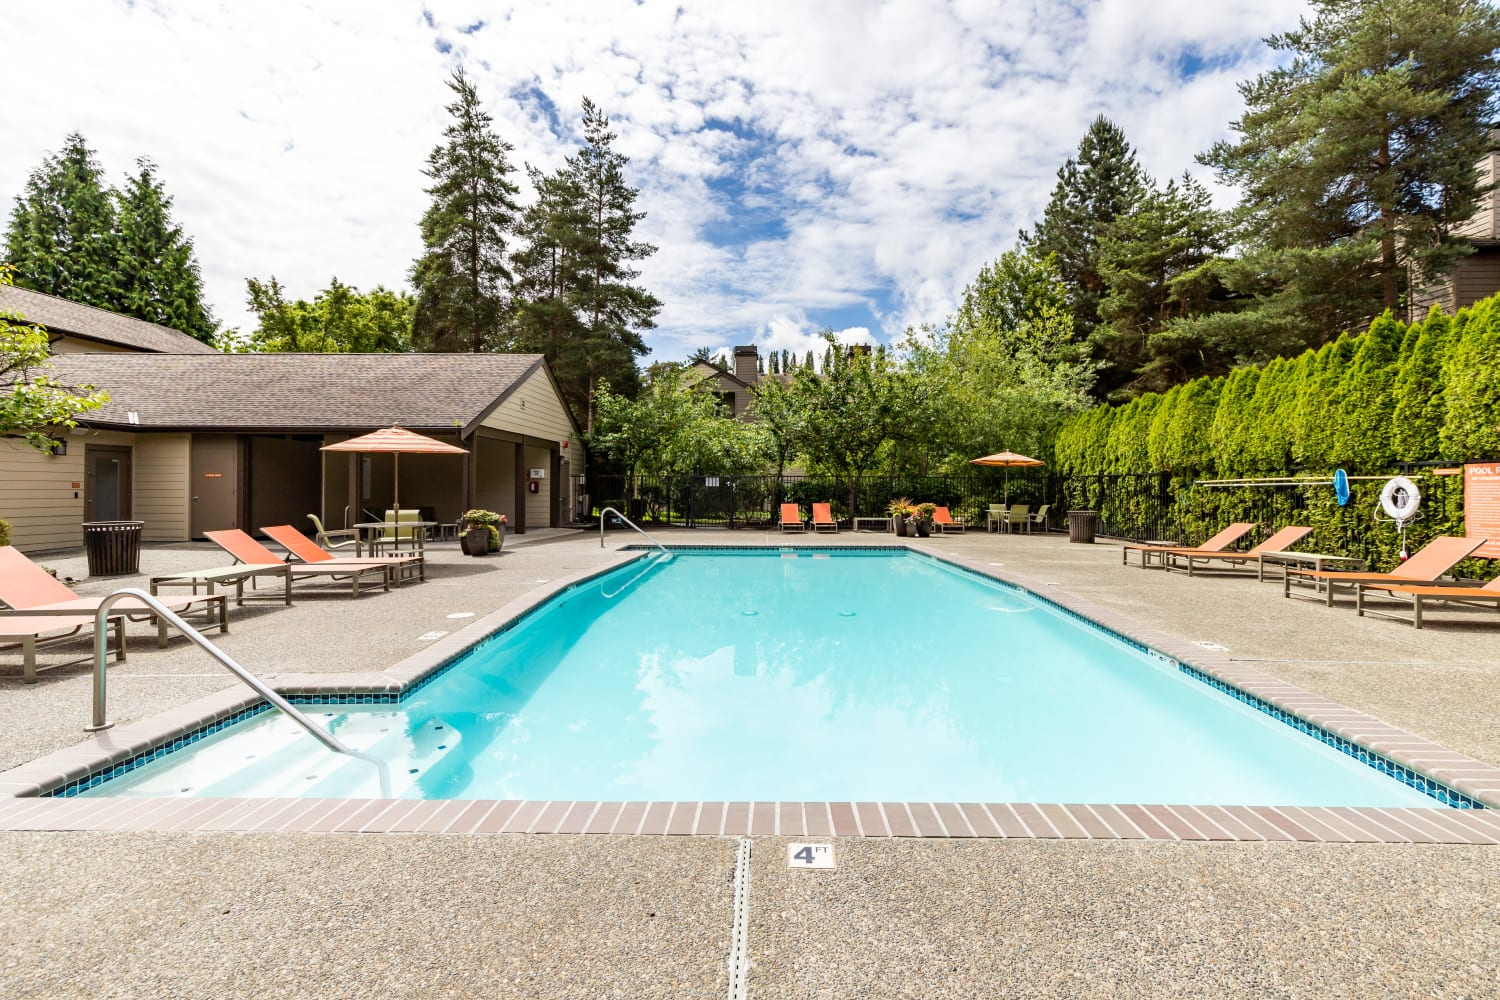 Enjoy Apartments with an outdoor community pool at Campbell Run Apartments